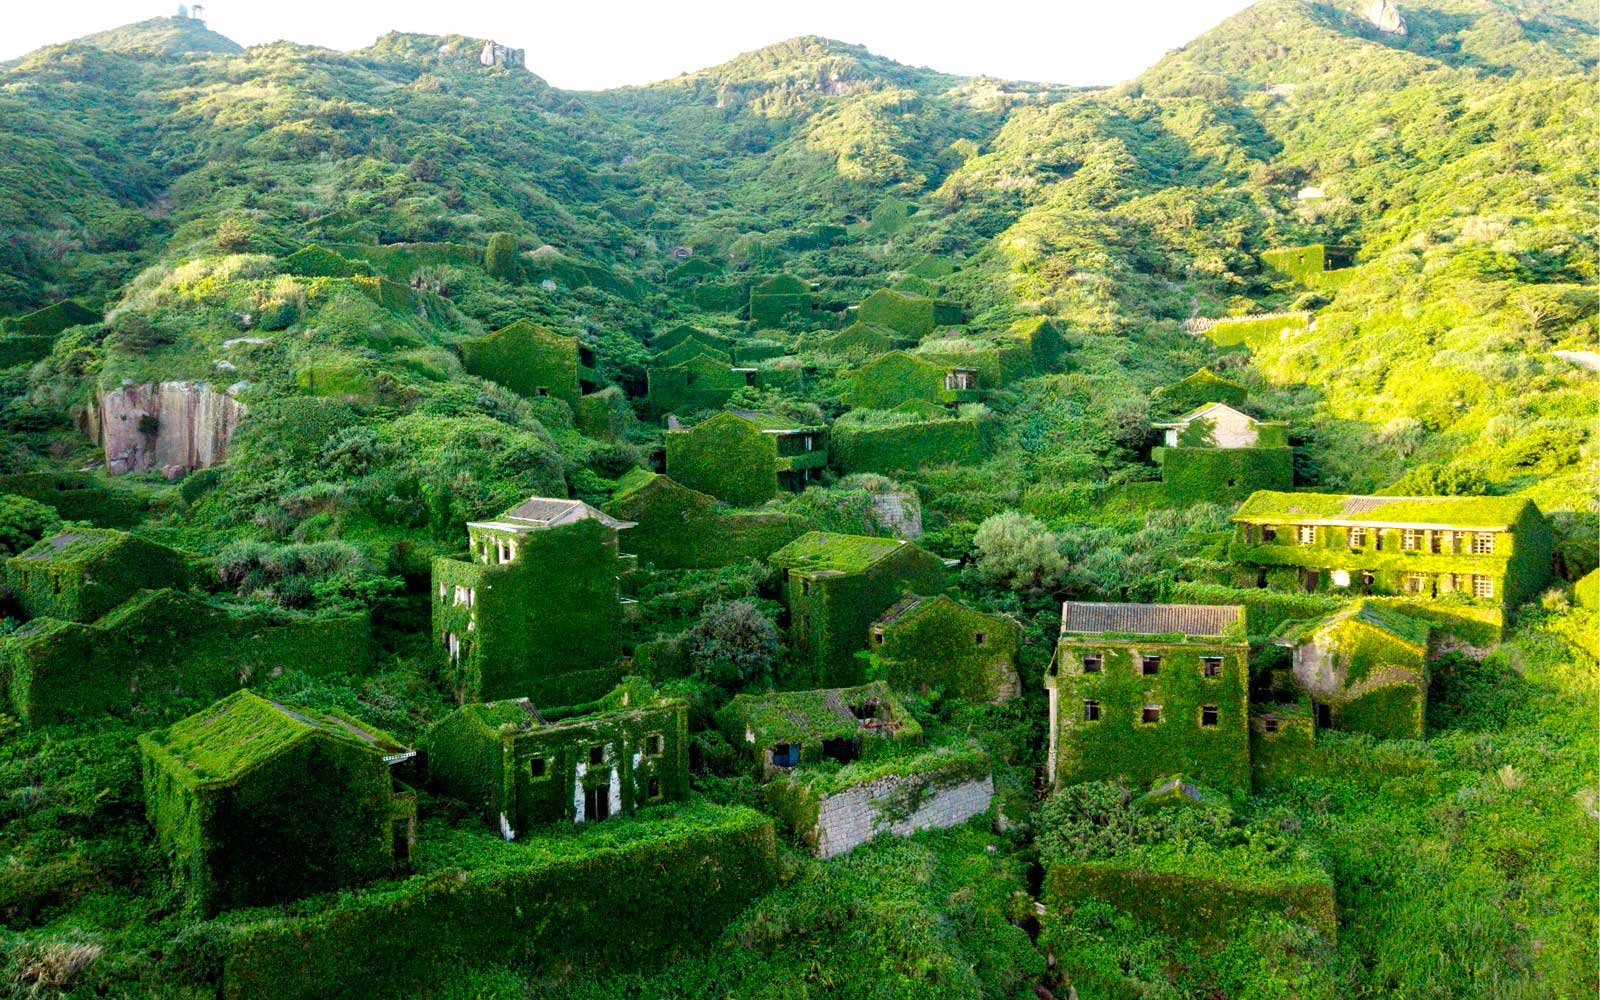 This Ghost Town Was Swallowed Up by Nature and Now It's an Eerily Beautiful Hiking Destination